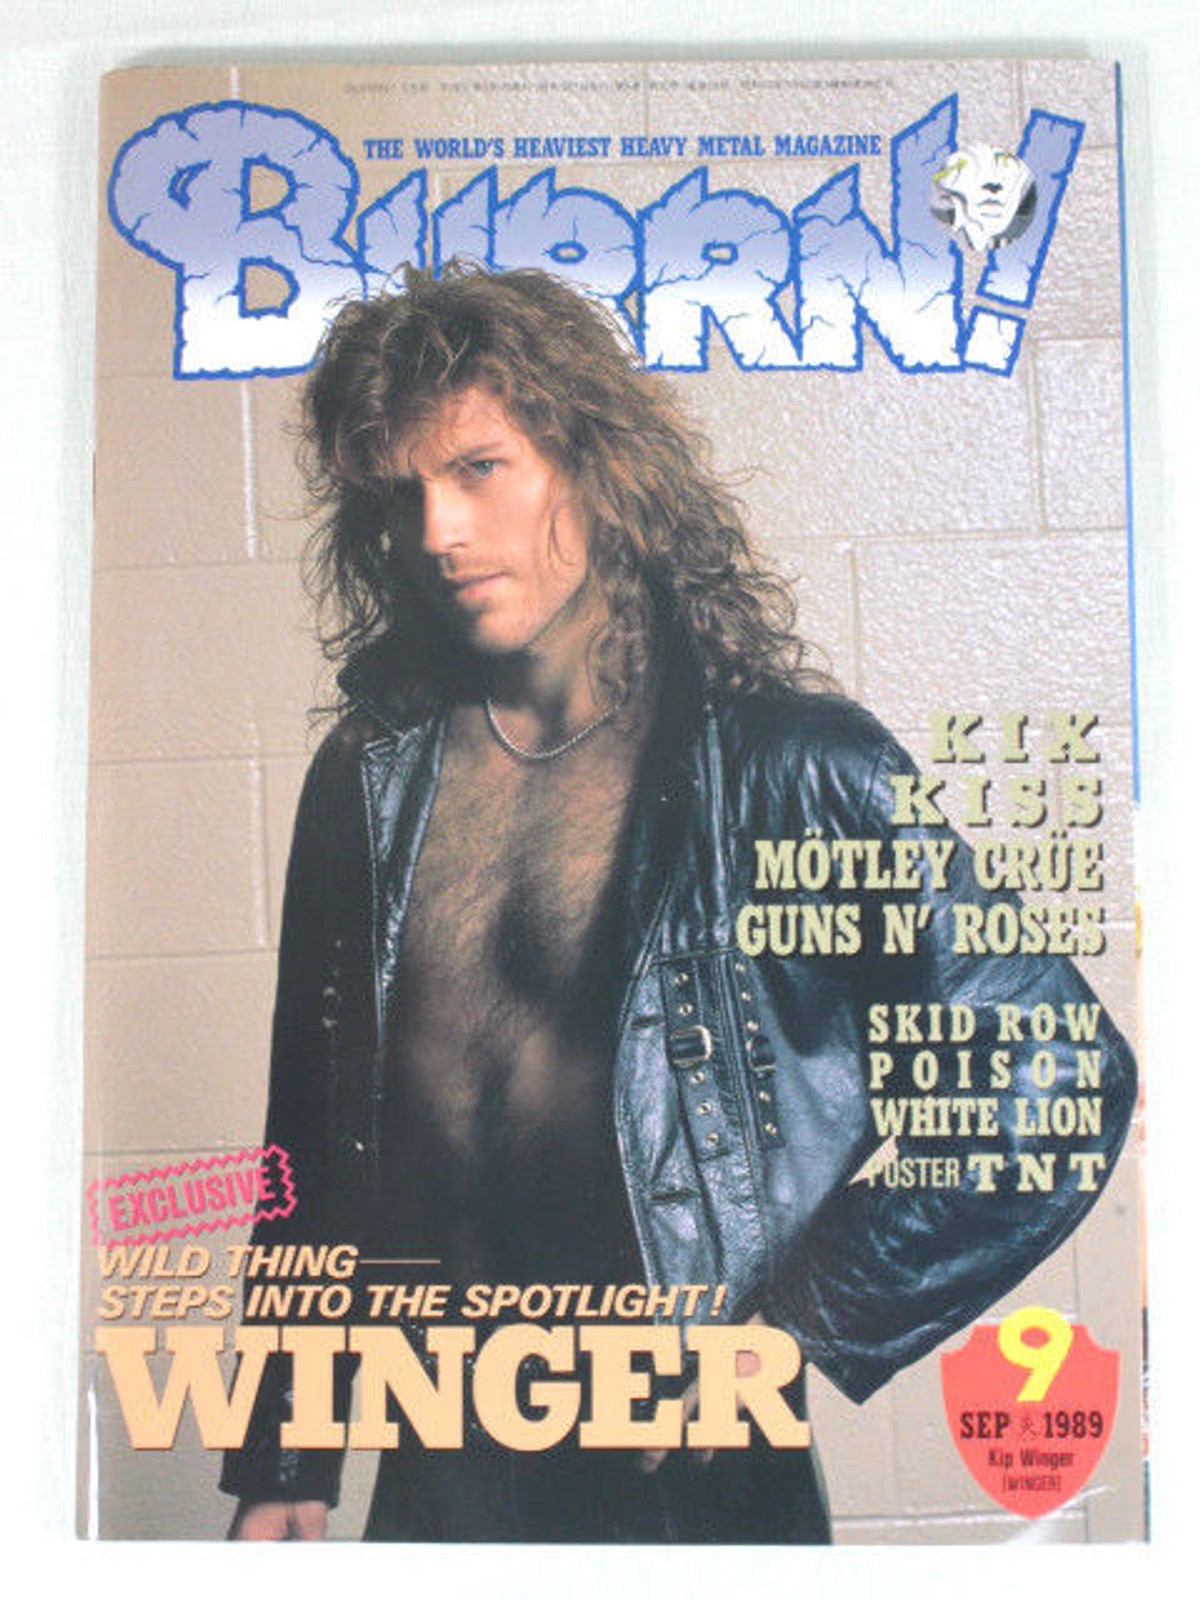 1989/09 BURRN! Japan Rock Magazine WINGER/KISS/MOTLEY CLUE/GUNS N' ROSES/POISON